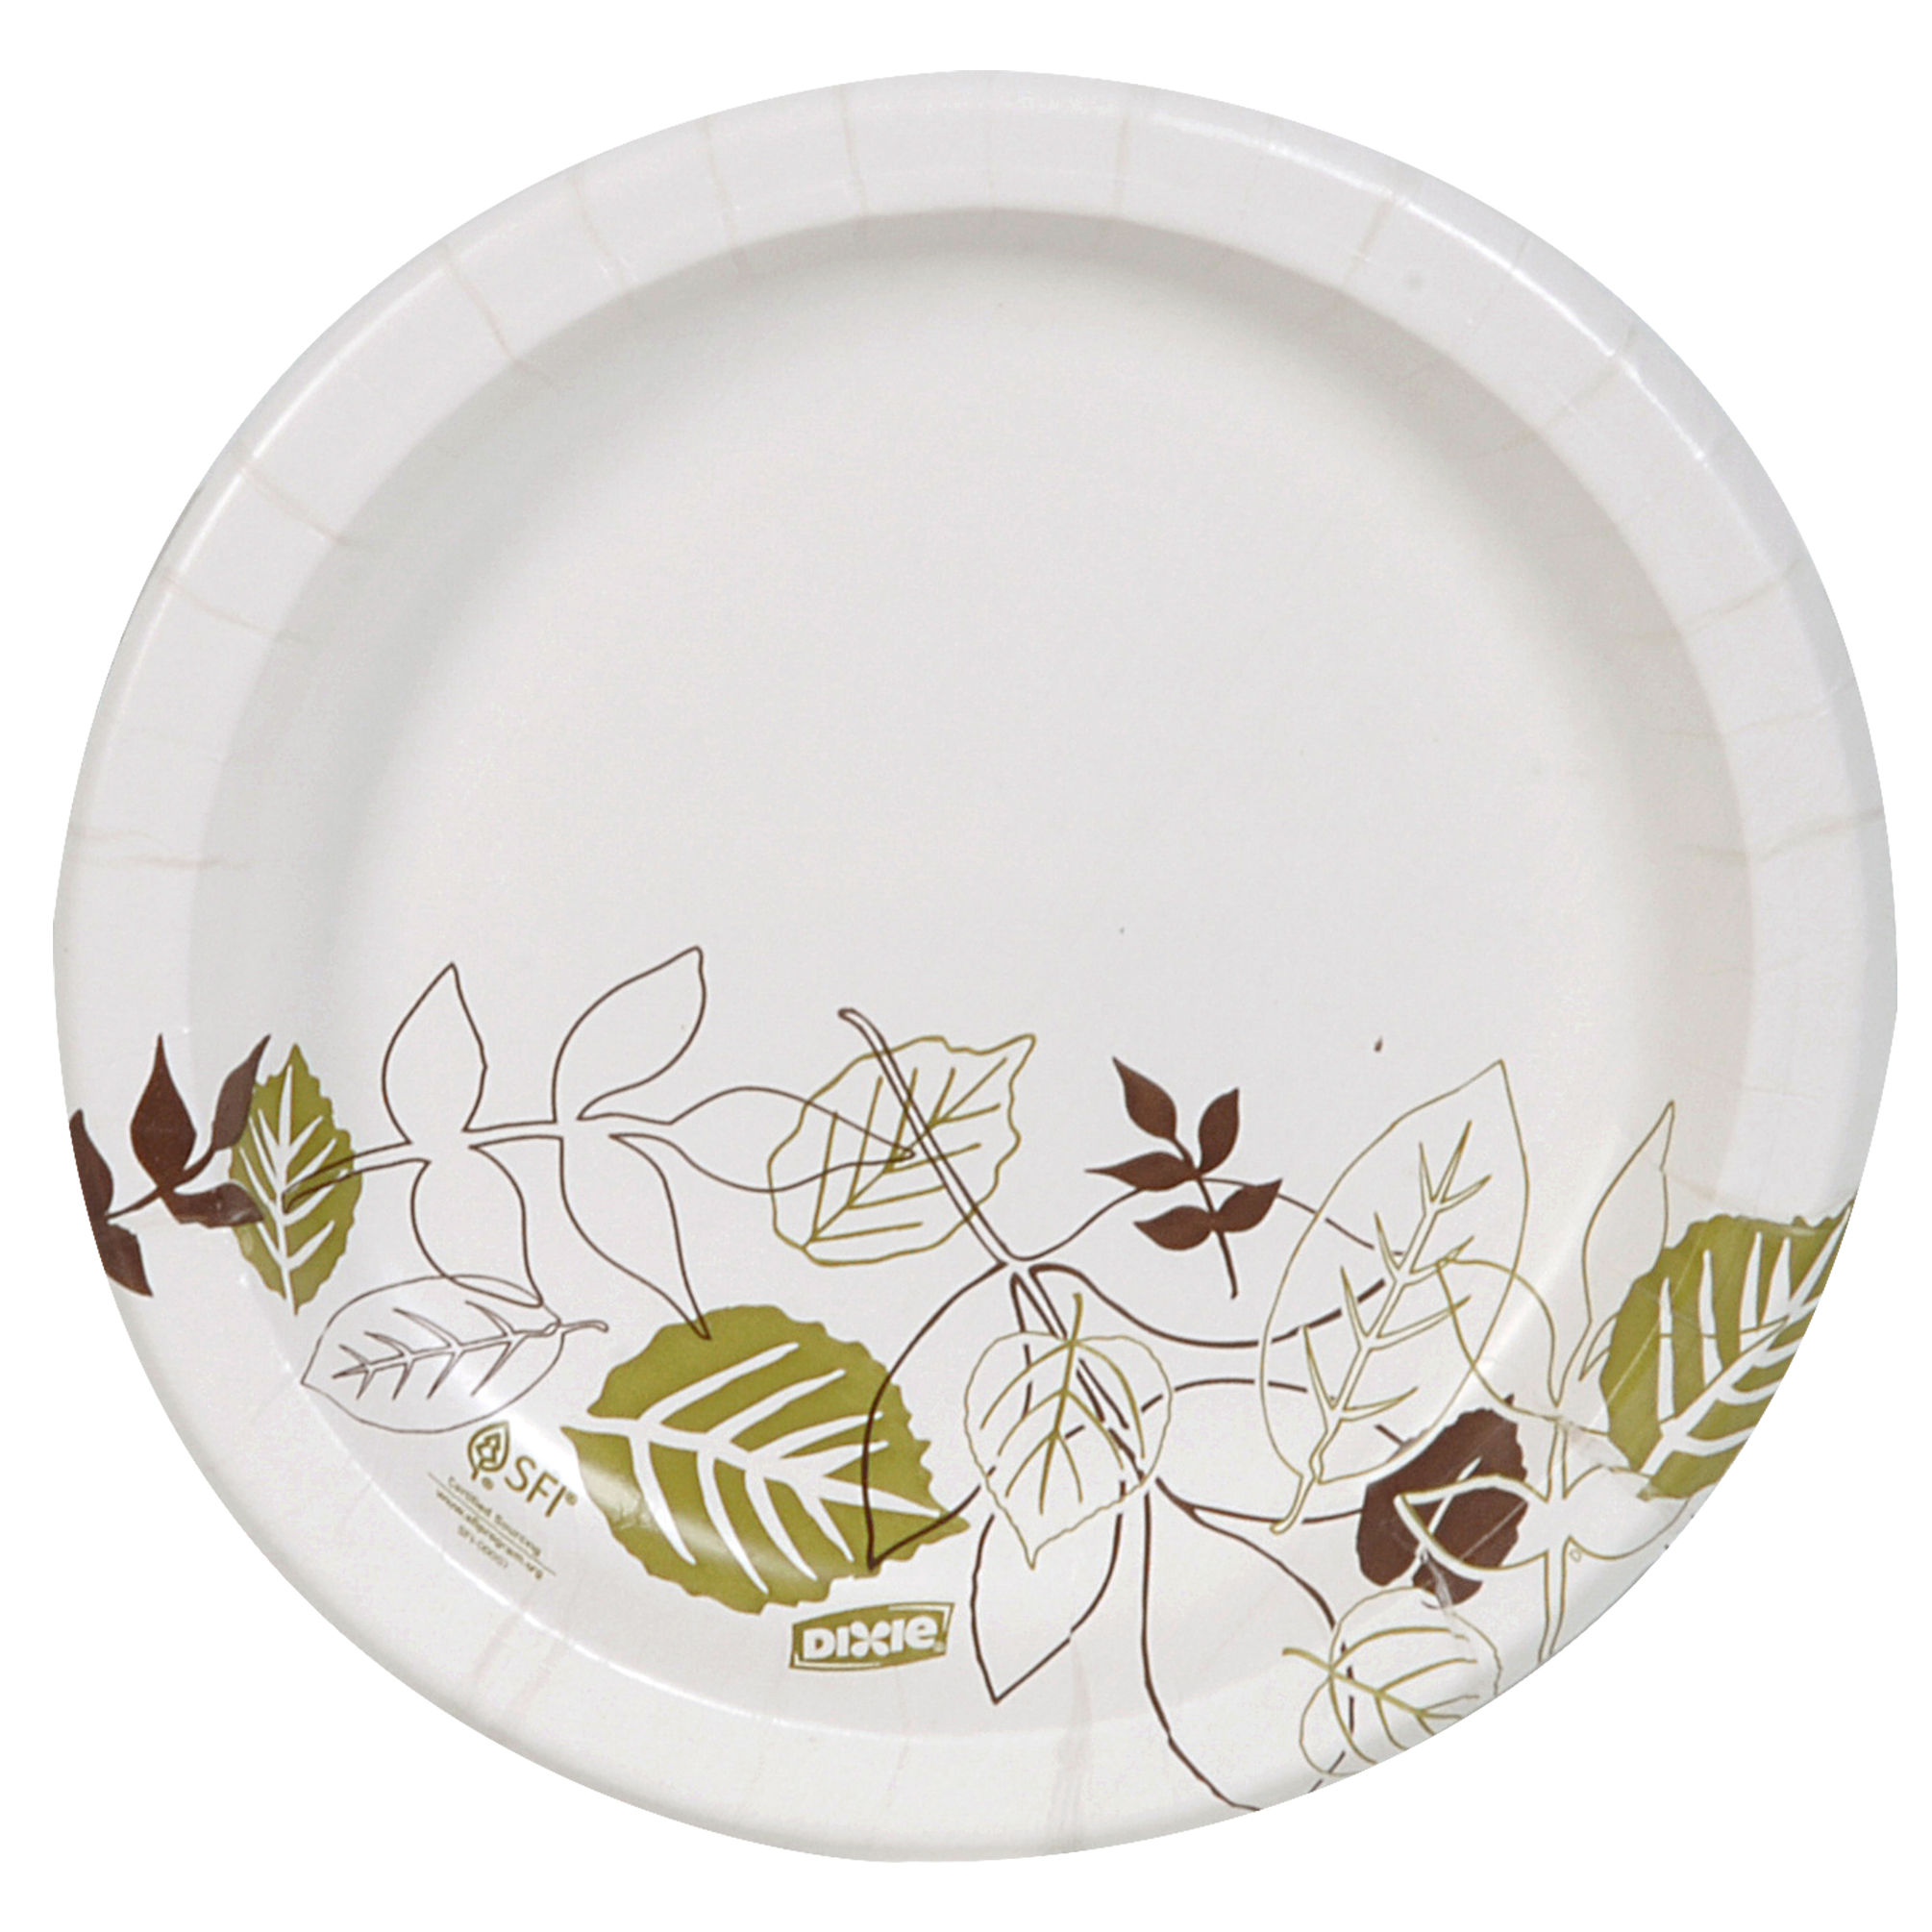 """Dixie® (UX9WS) Medium-Weight 8.5"""" Paper Plate by Georgia-Pacific, Pathways®, 4 Packs of 125 Plates (500 Plates Total)"""